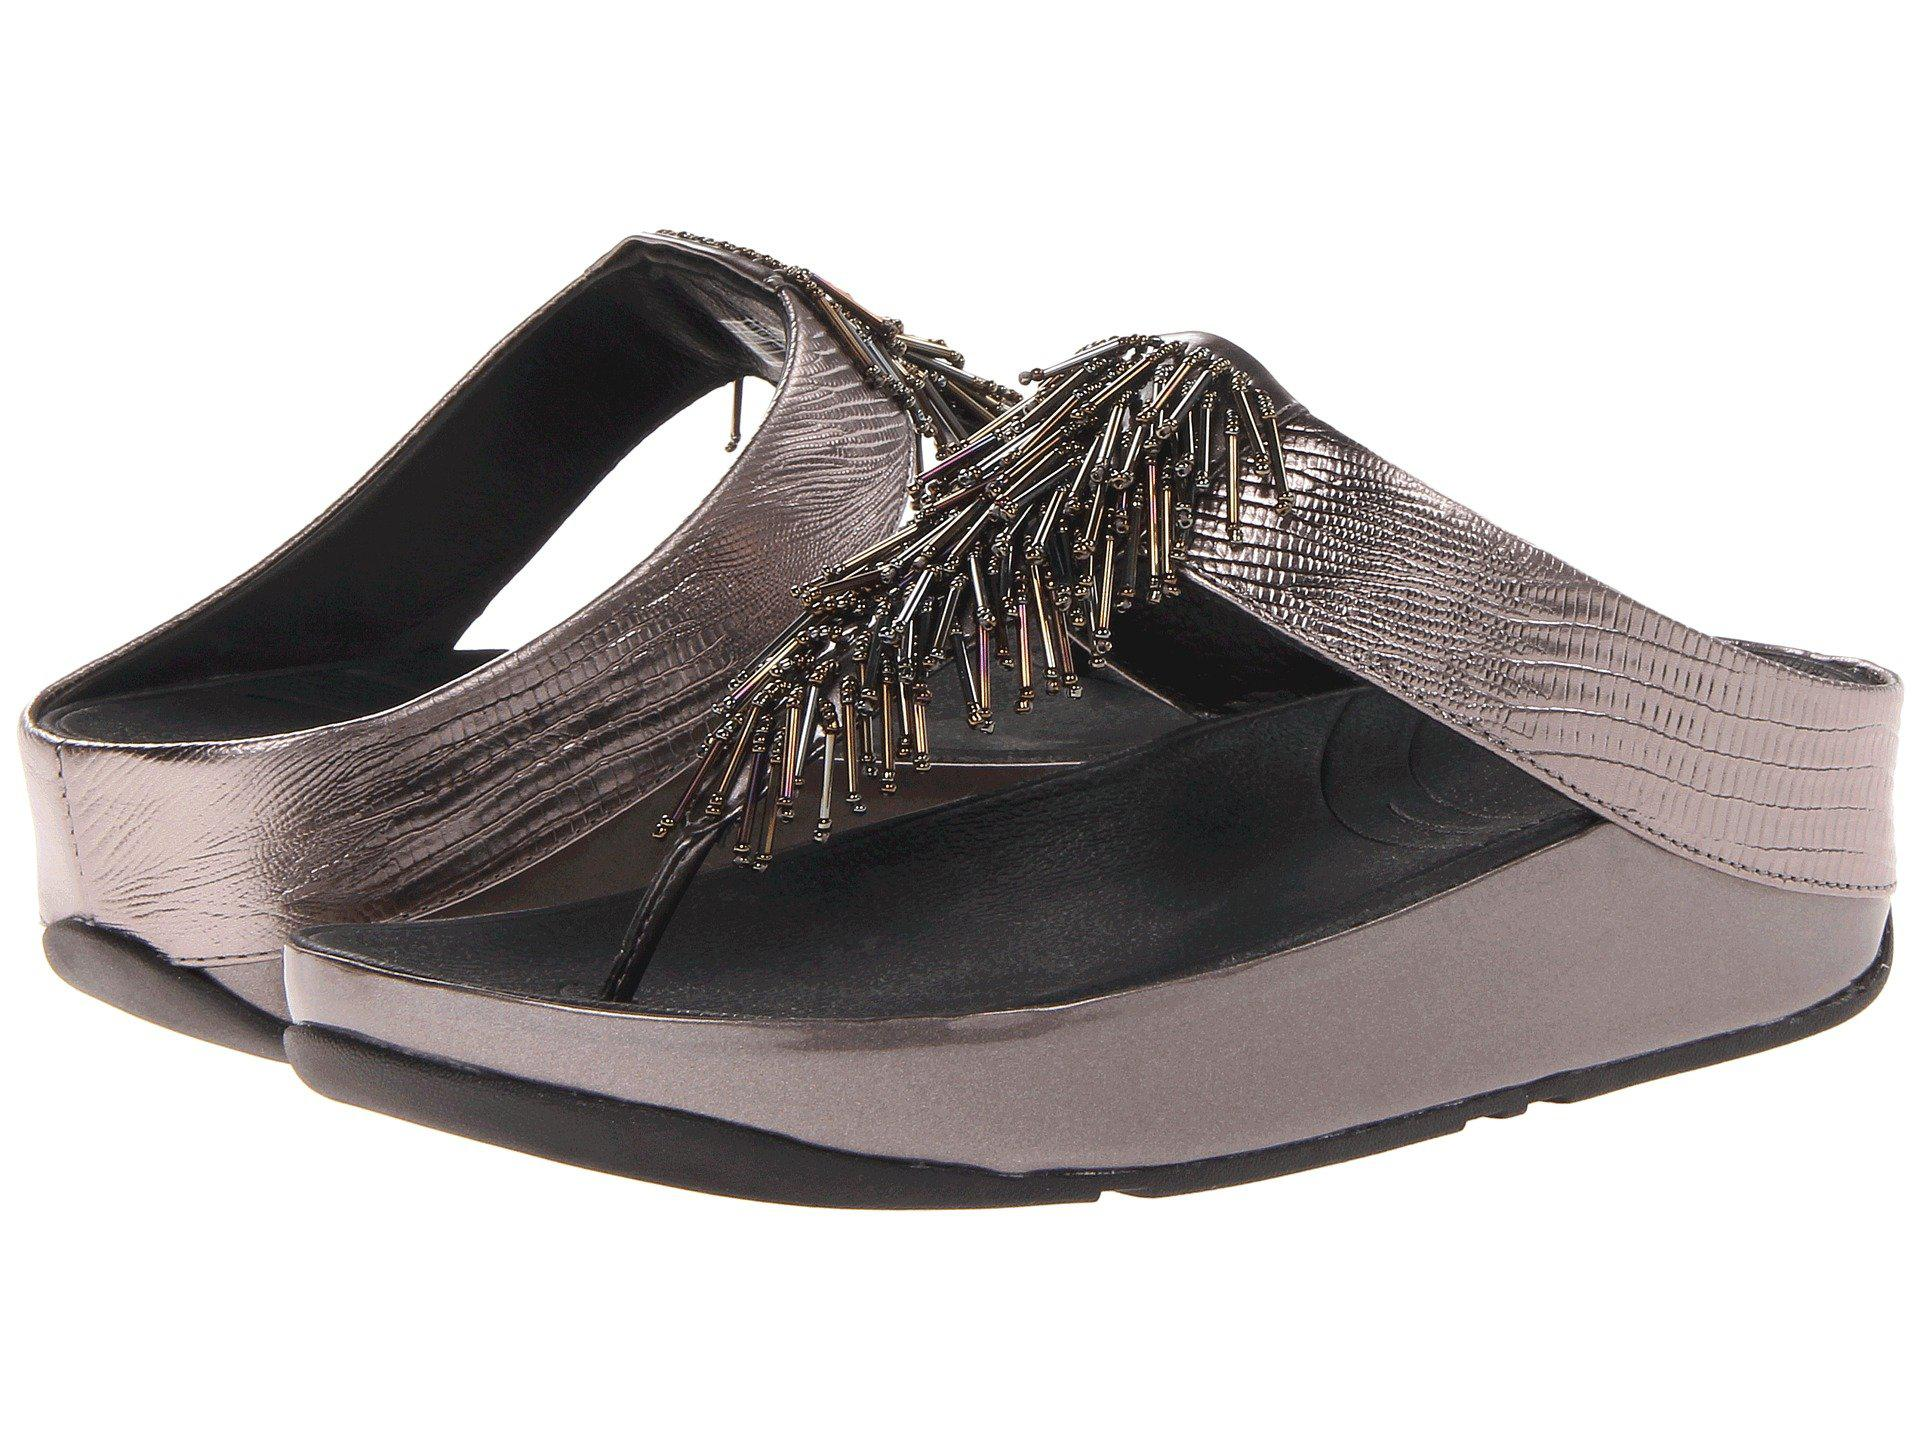 Fitflop Cha Cha Beaded Fringe Toe Post Sandals In Gray Lyst